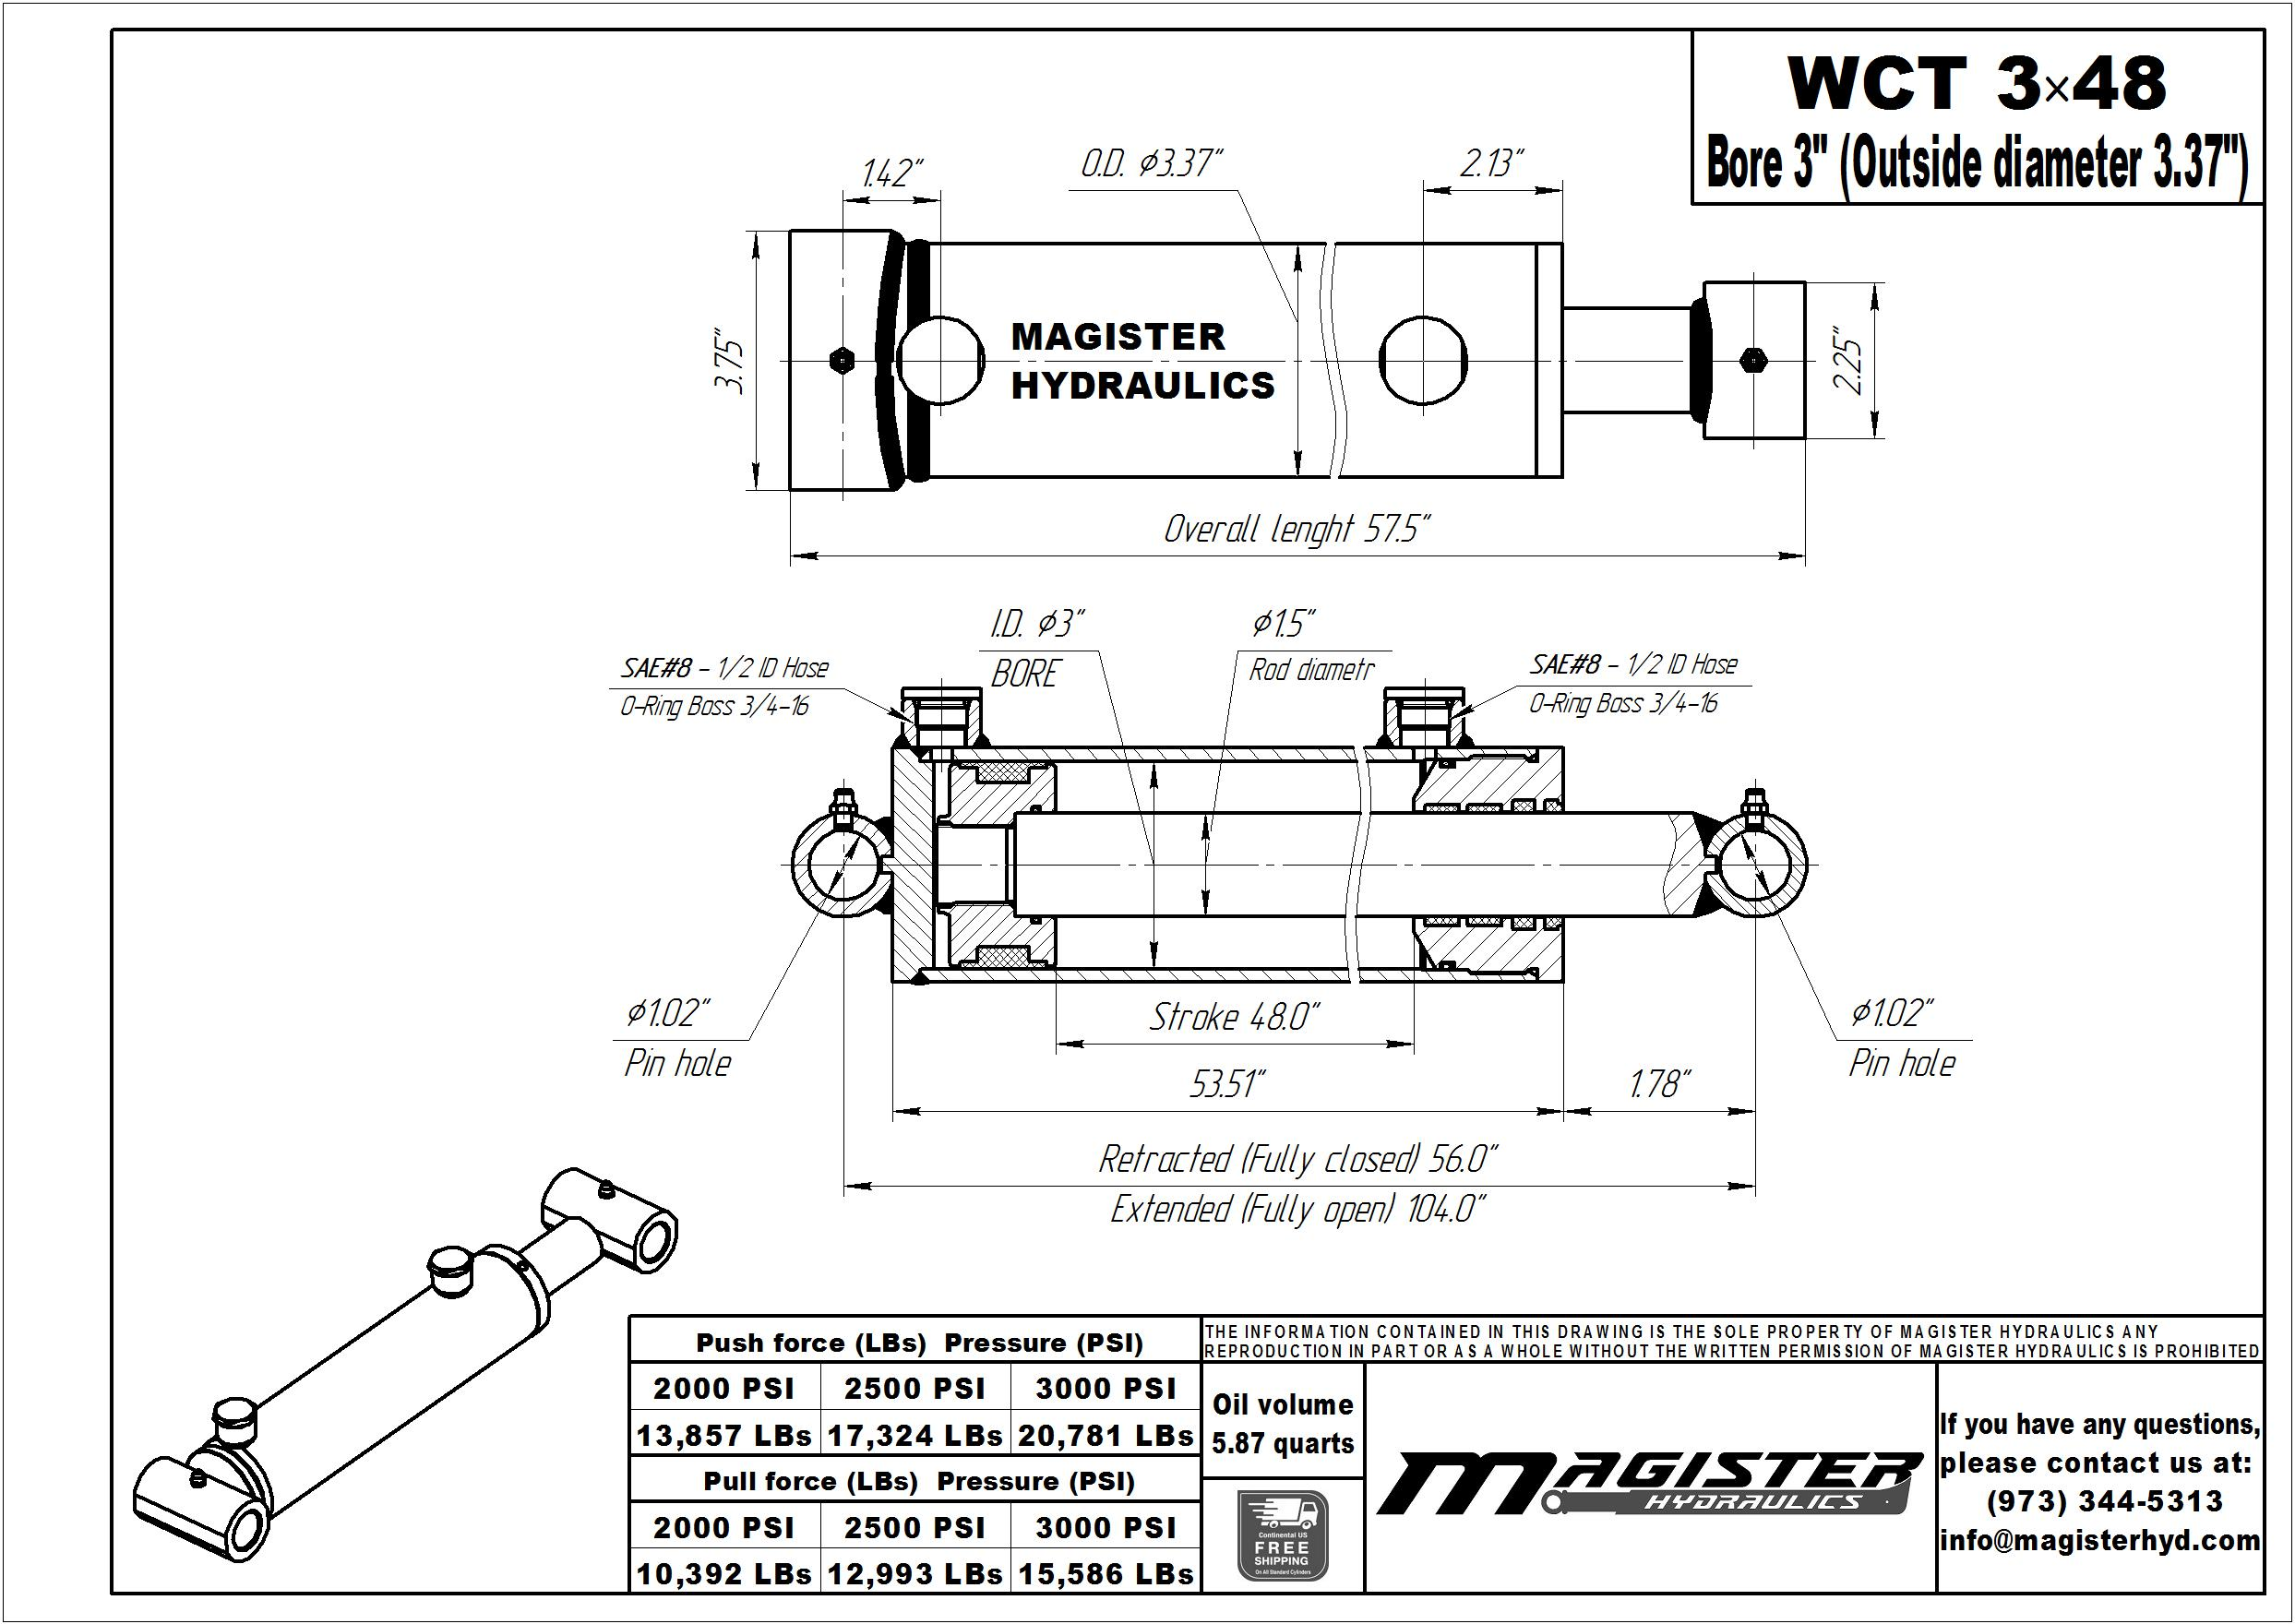 3 bore x 48 stroke hydraulic cylinder, welded cross tube double acting cylinder | Magister Hydraulics